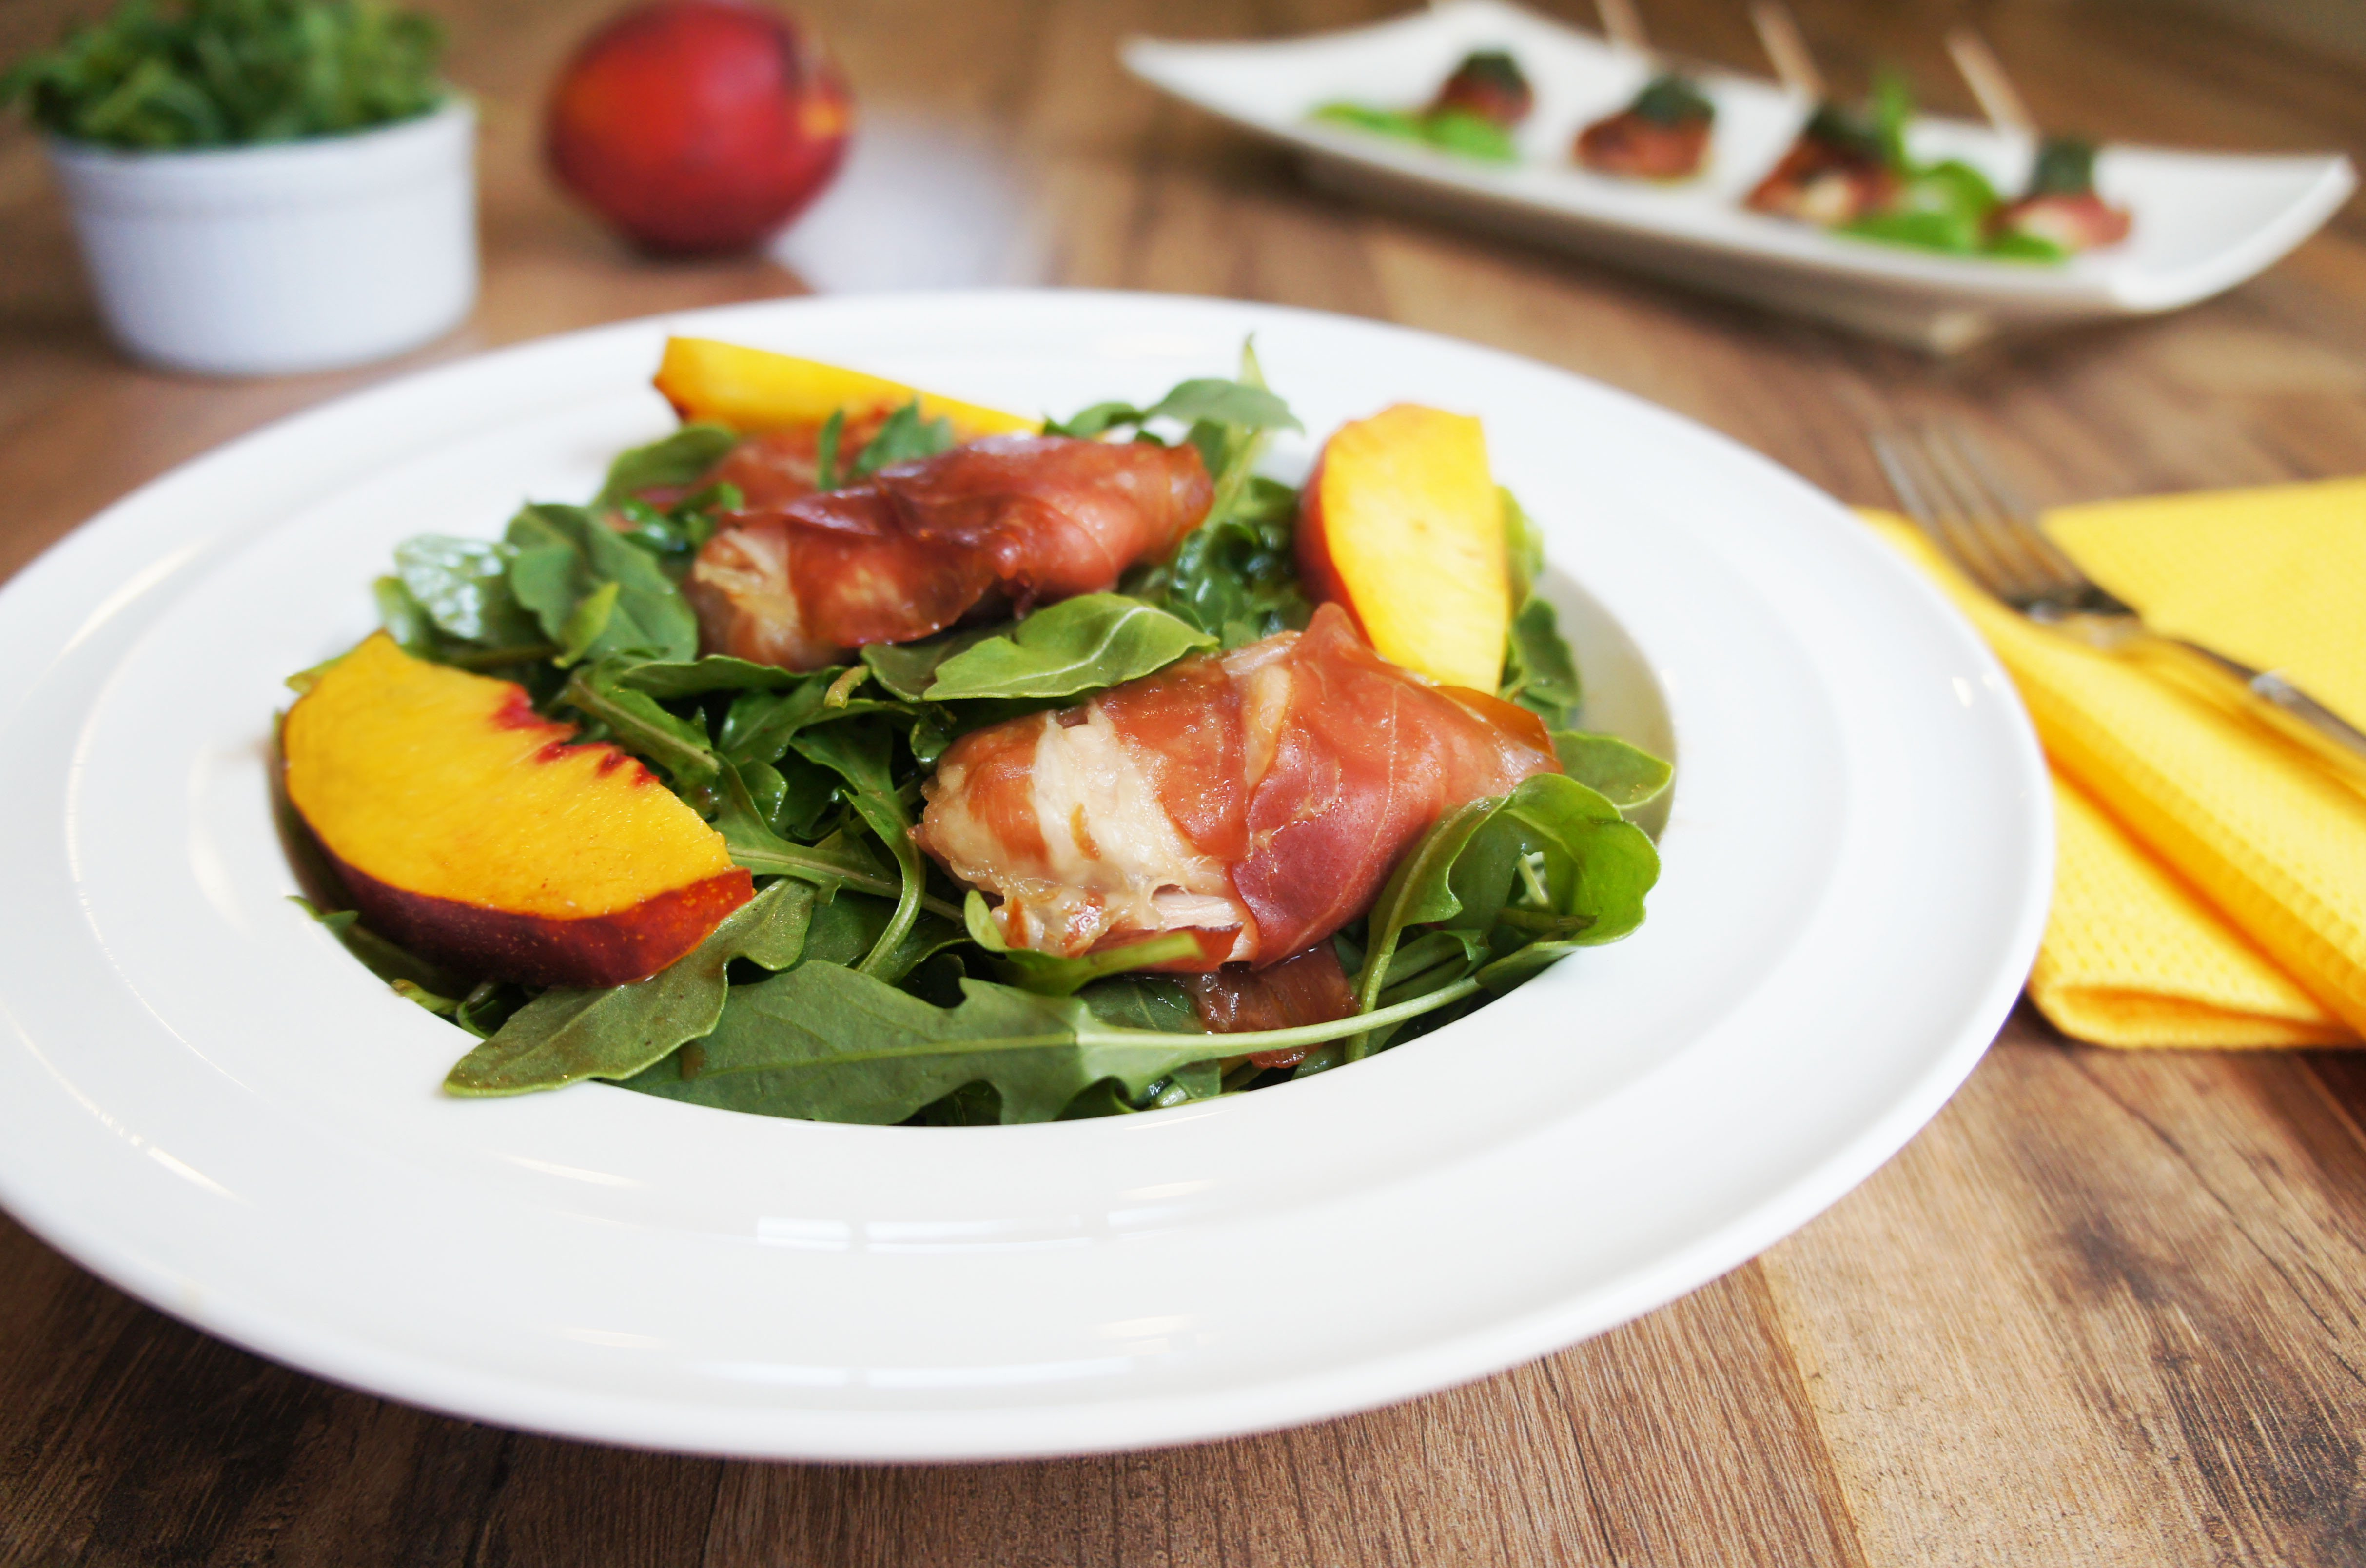 Prosciutto Wrapped Chicken Salad With Pesto Vinaigrette